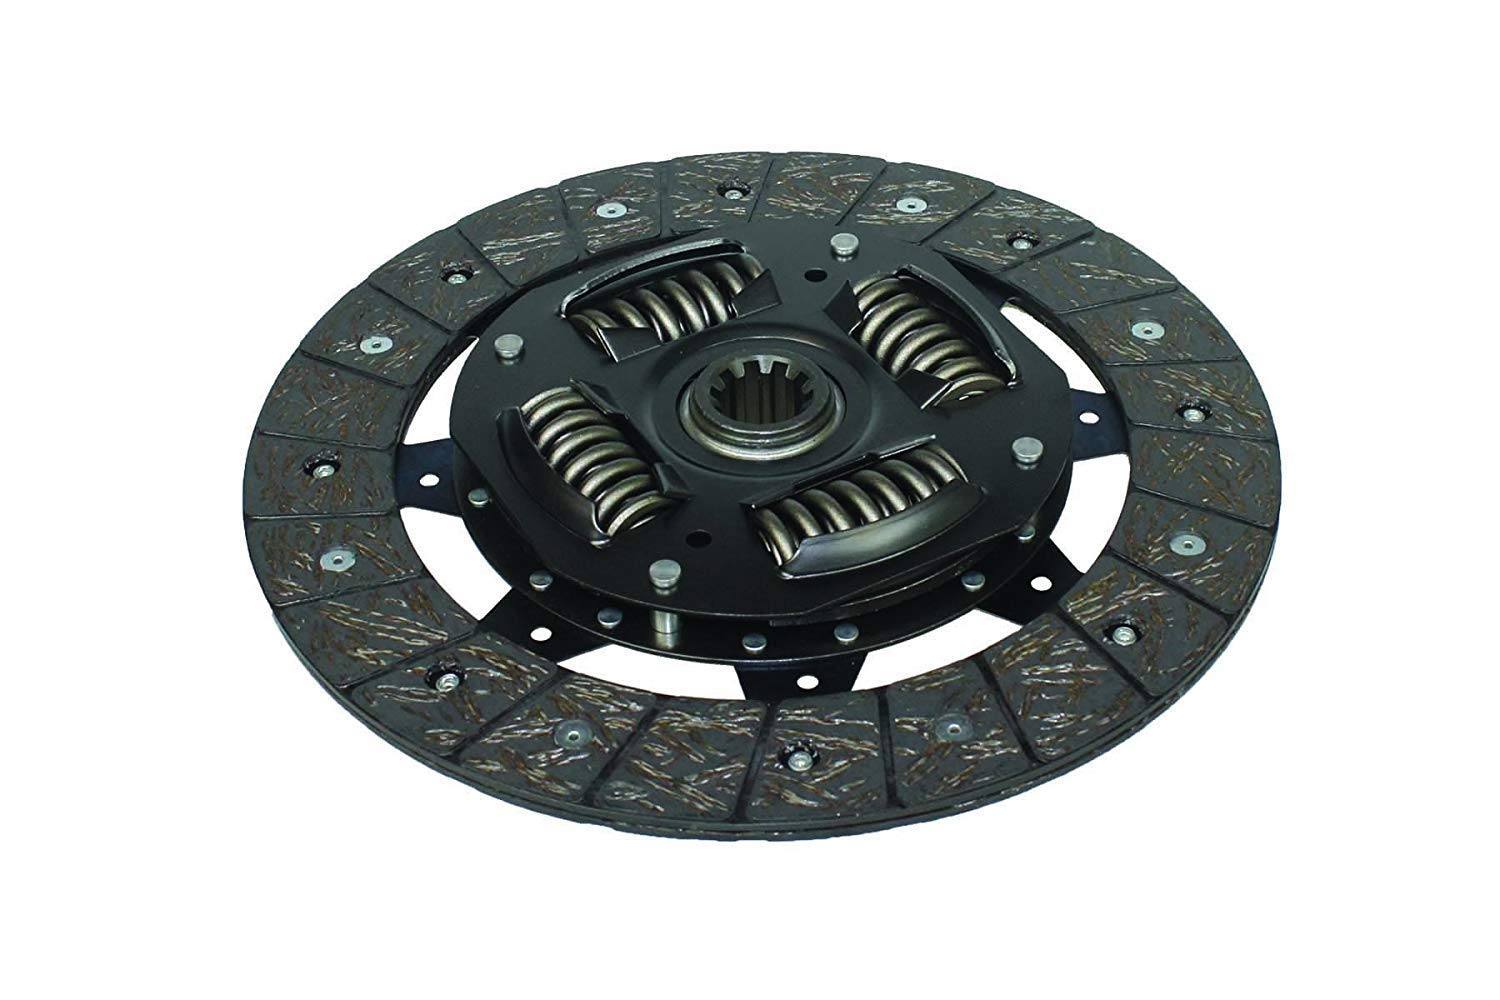 Clutch Kit works with Ford Mustang Coupe Convertible 2-Door 1994-2004 3.8L 3.9L V6 GAS OHV Naturally Aspirated